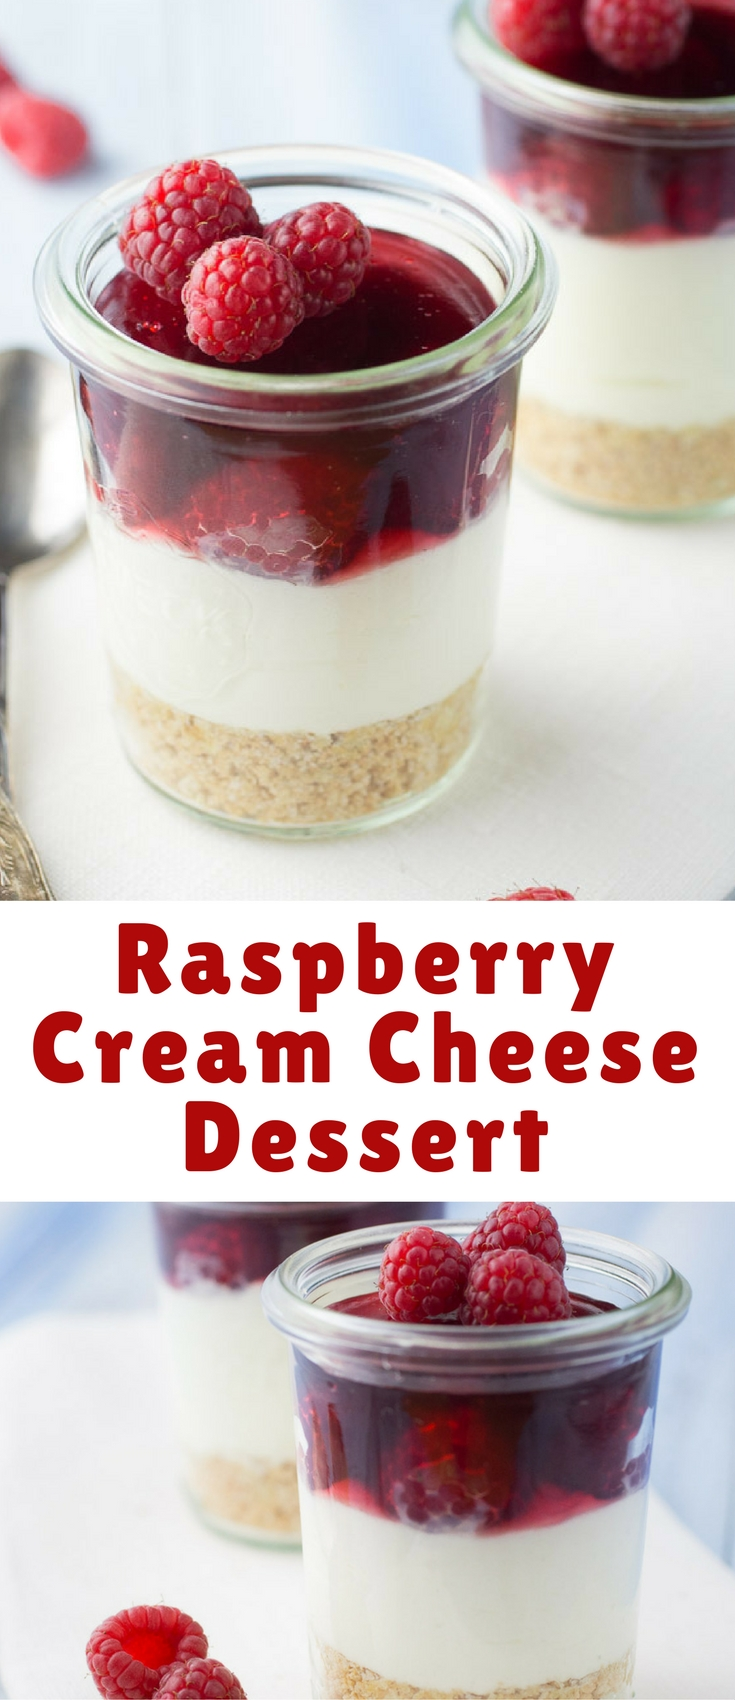 Crumbly cookies, sweet cream and fresh raspberries. This one is a winner everytime.